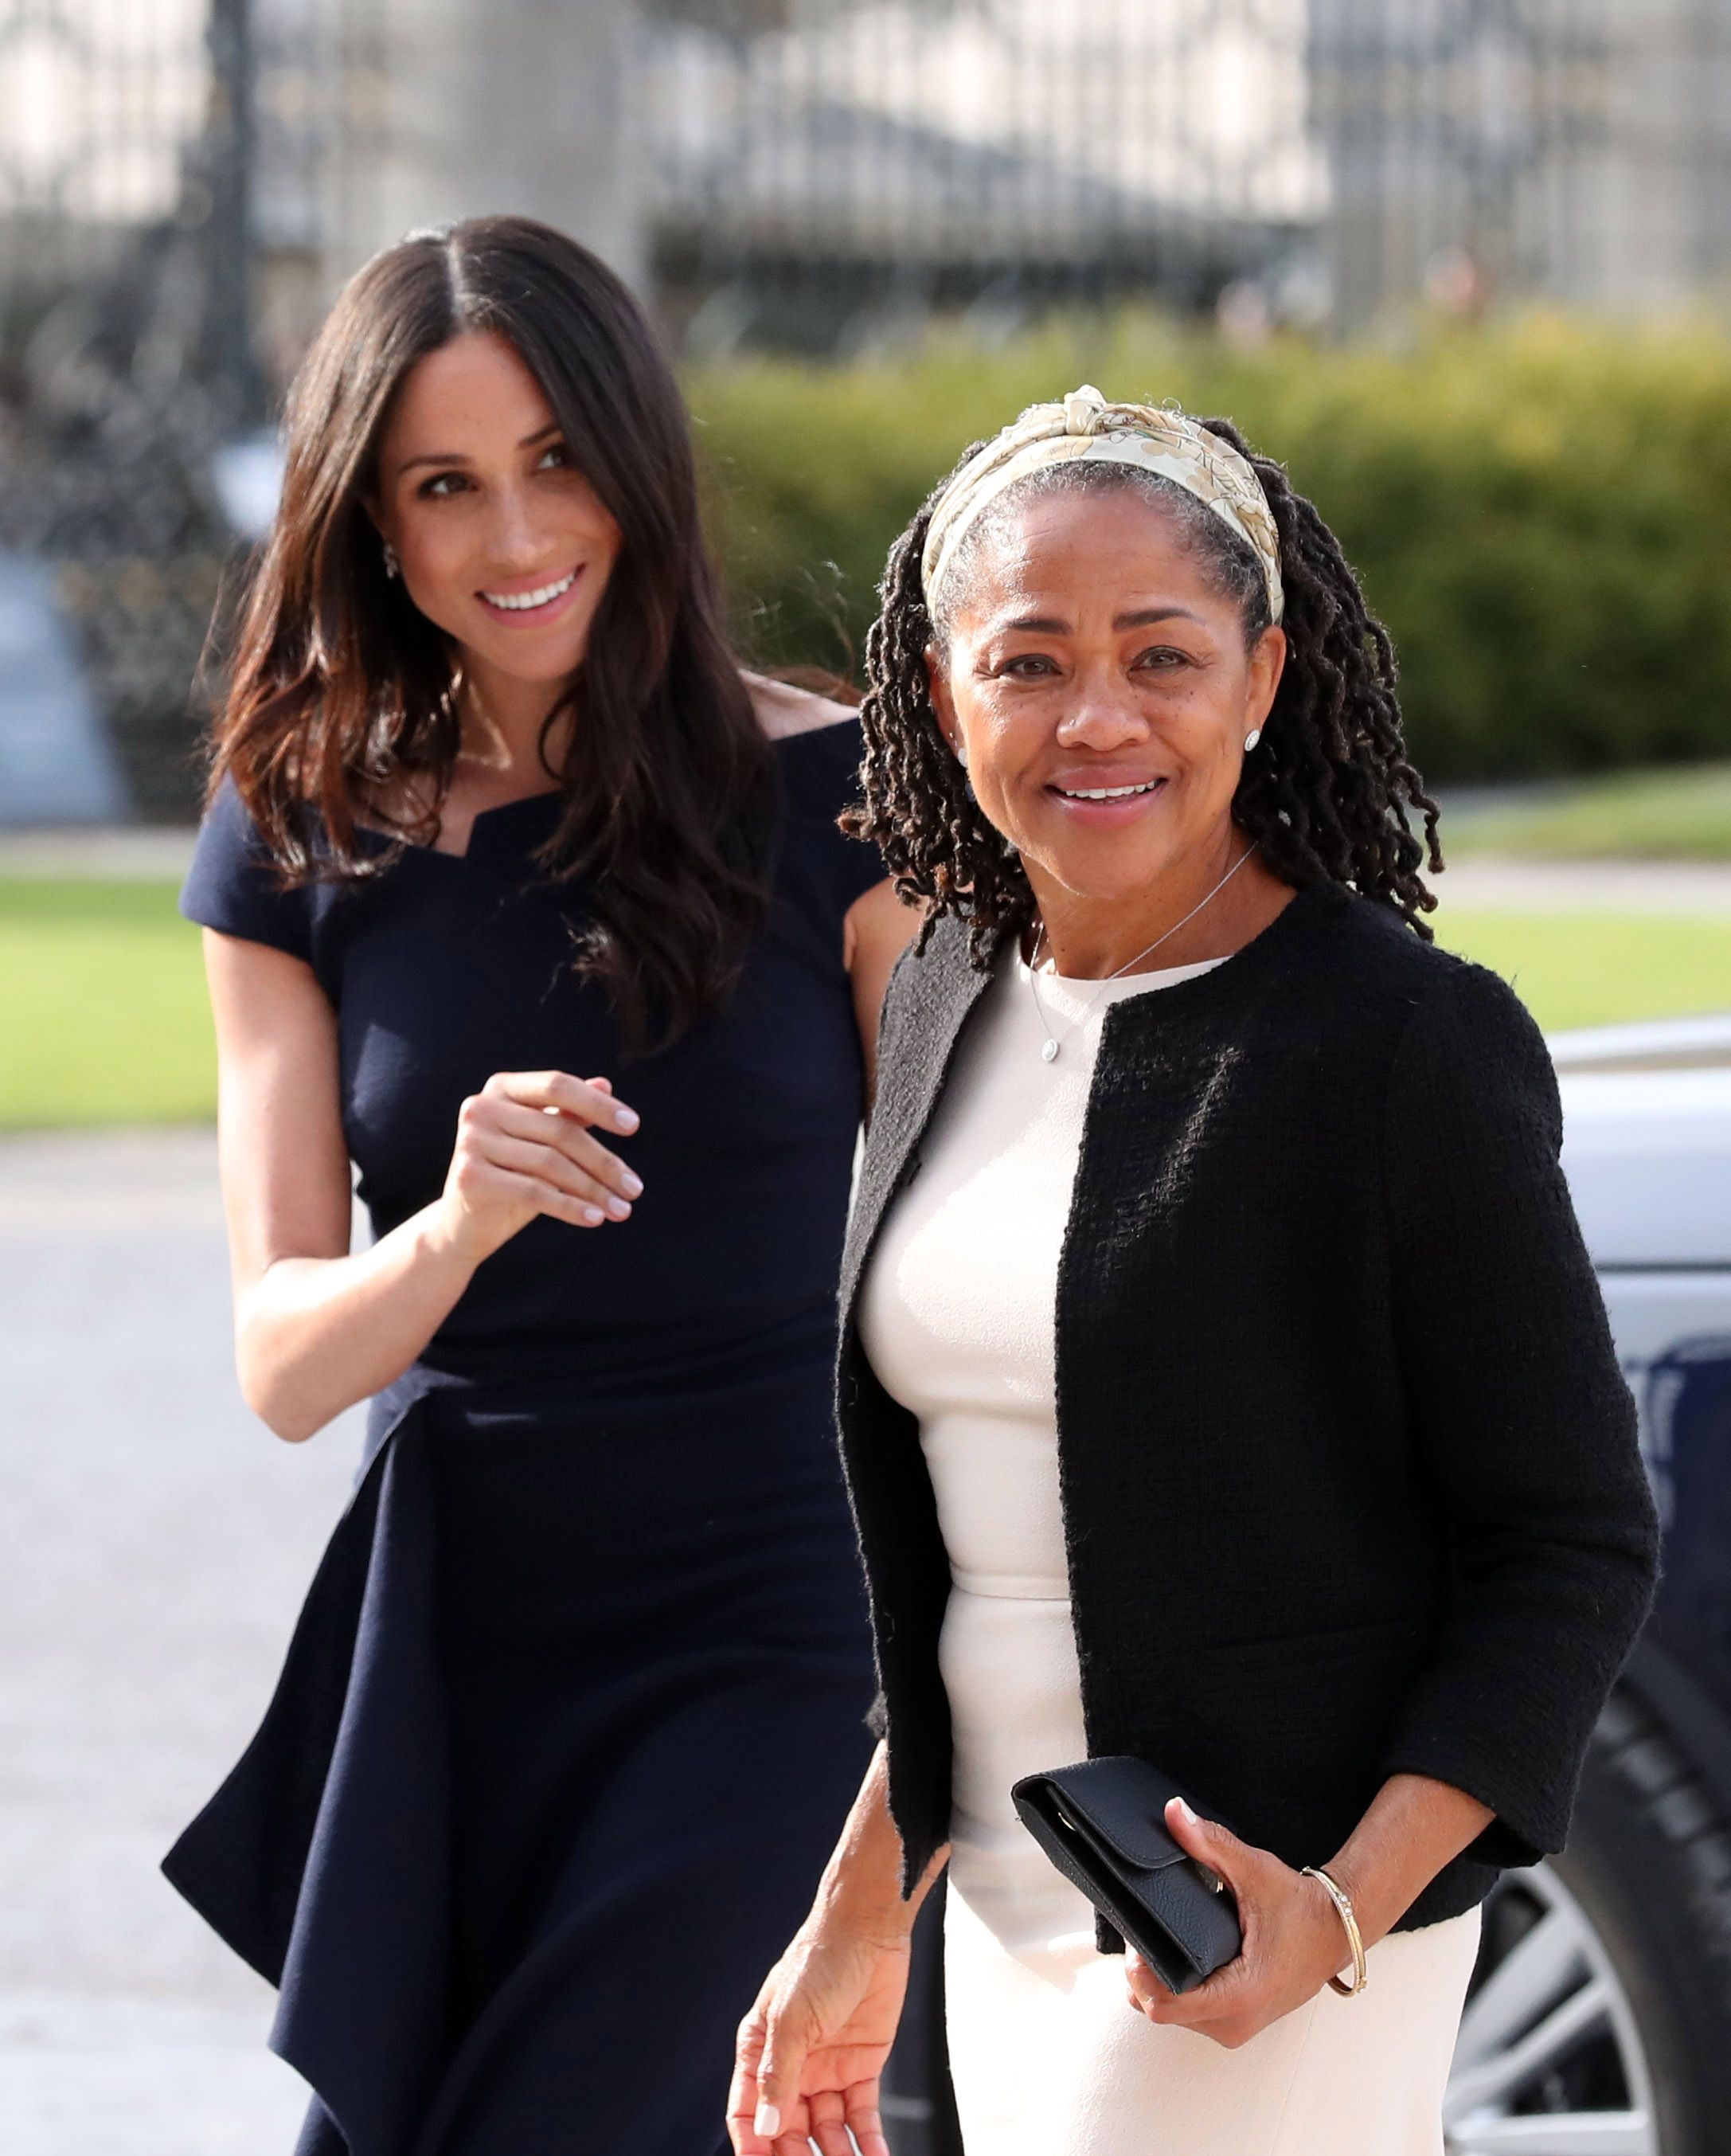 Meghan Markle's Mom Doria Ragland Has Reportedly Arrived in England, Giving a Major Hint About When Meghan Is Due